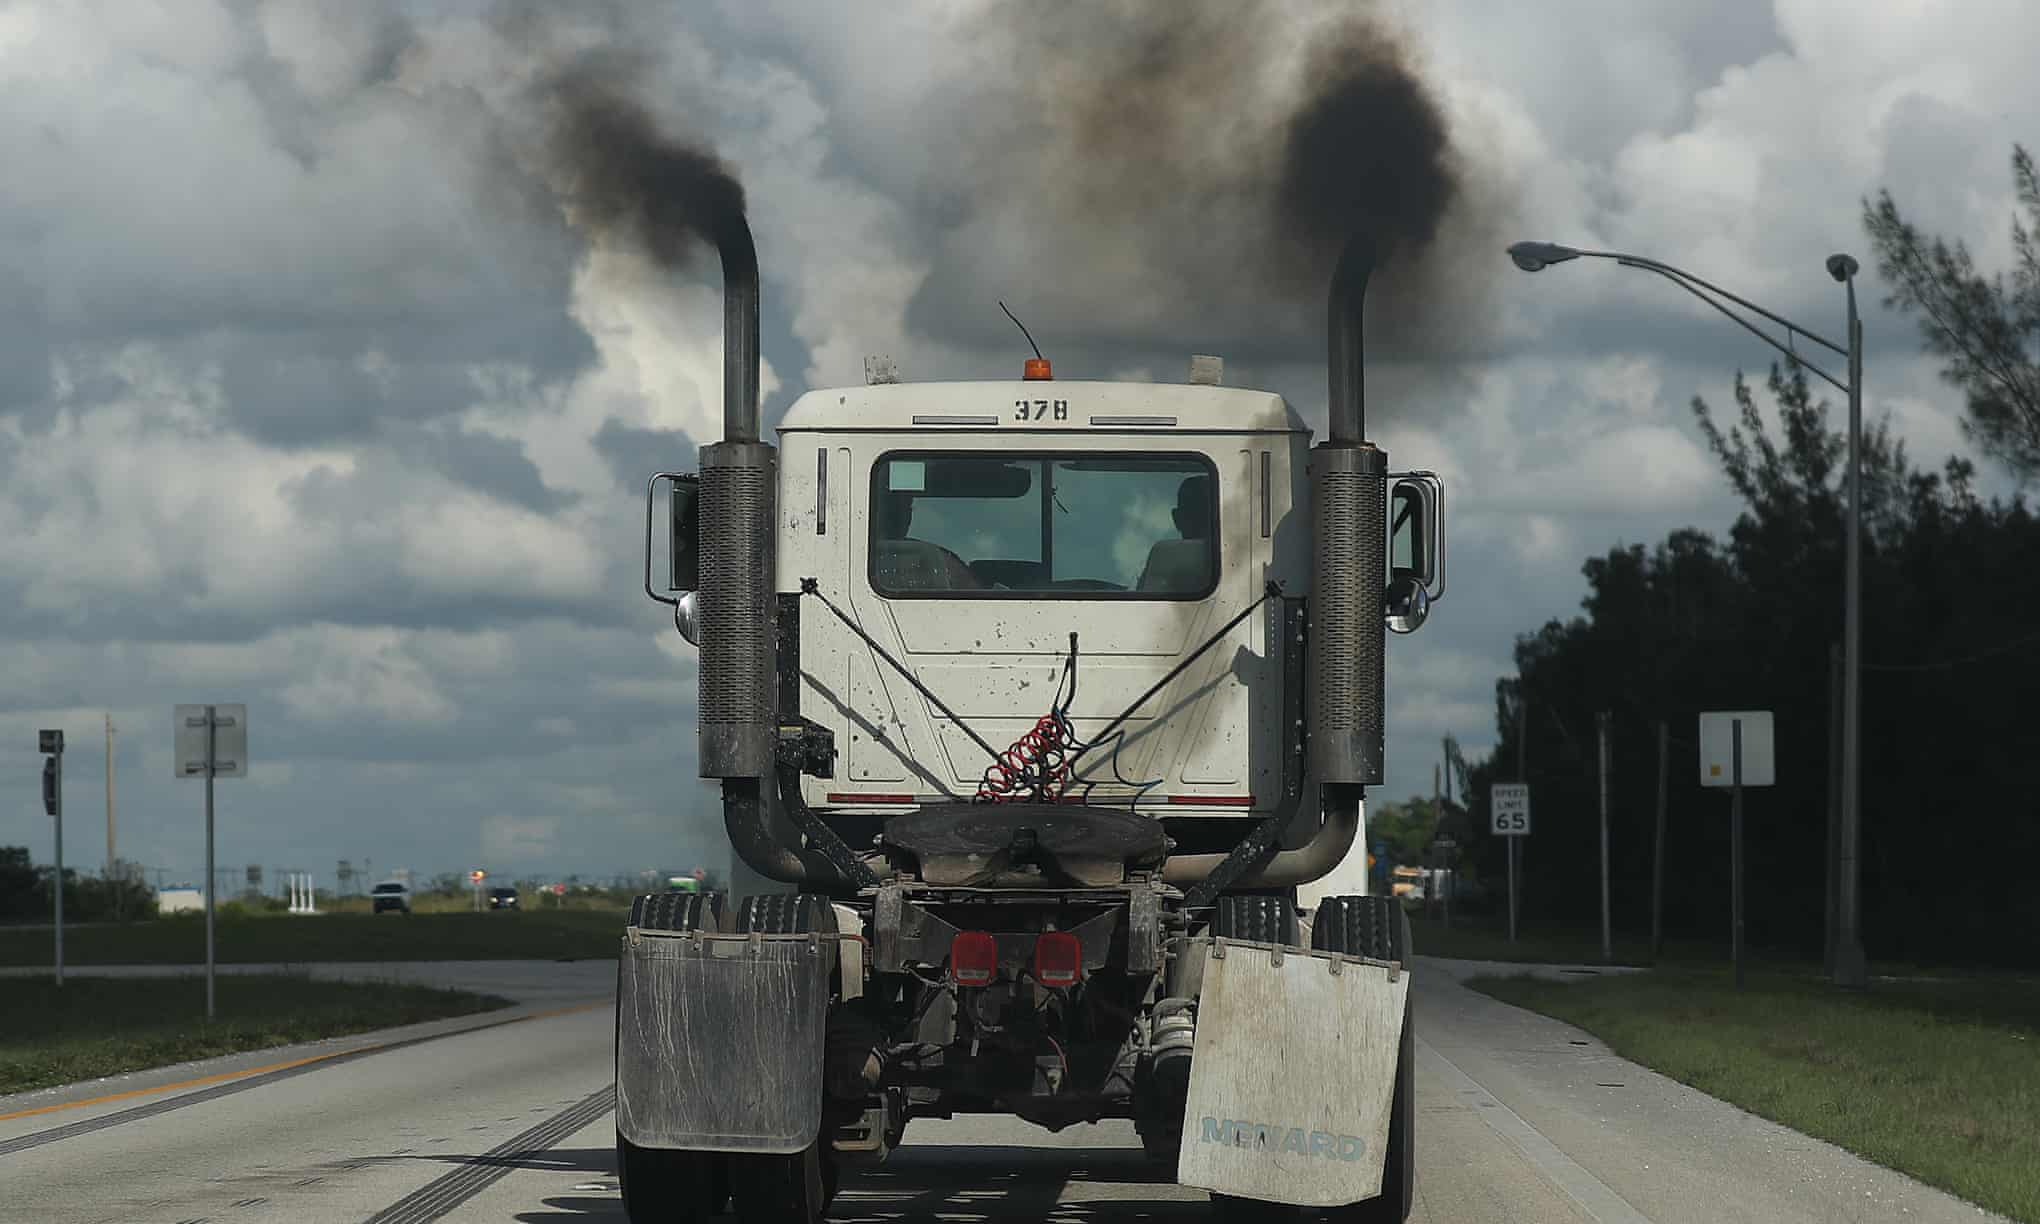 Yes, electric vehicles really are better than fossil fuel burners